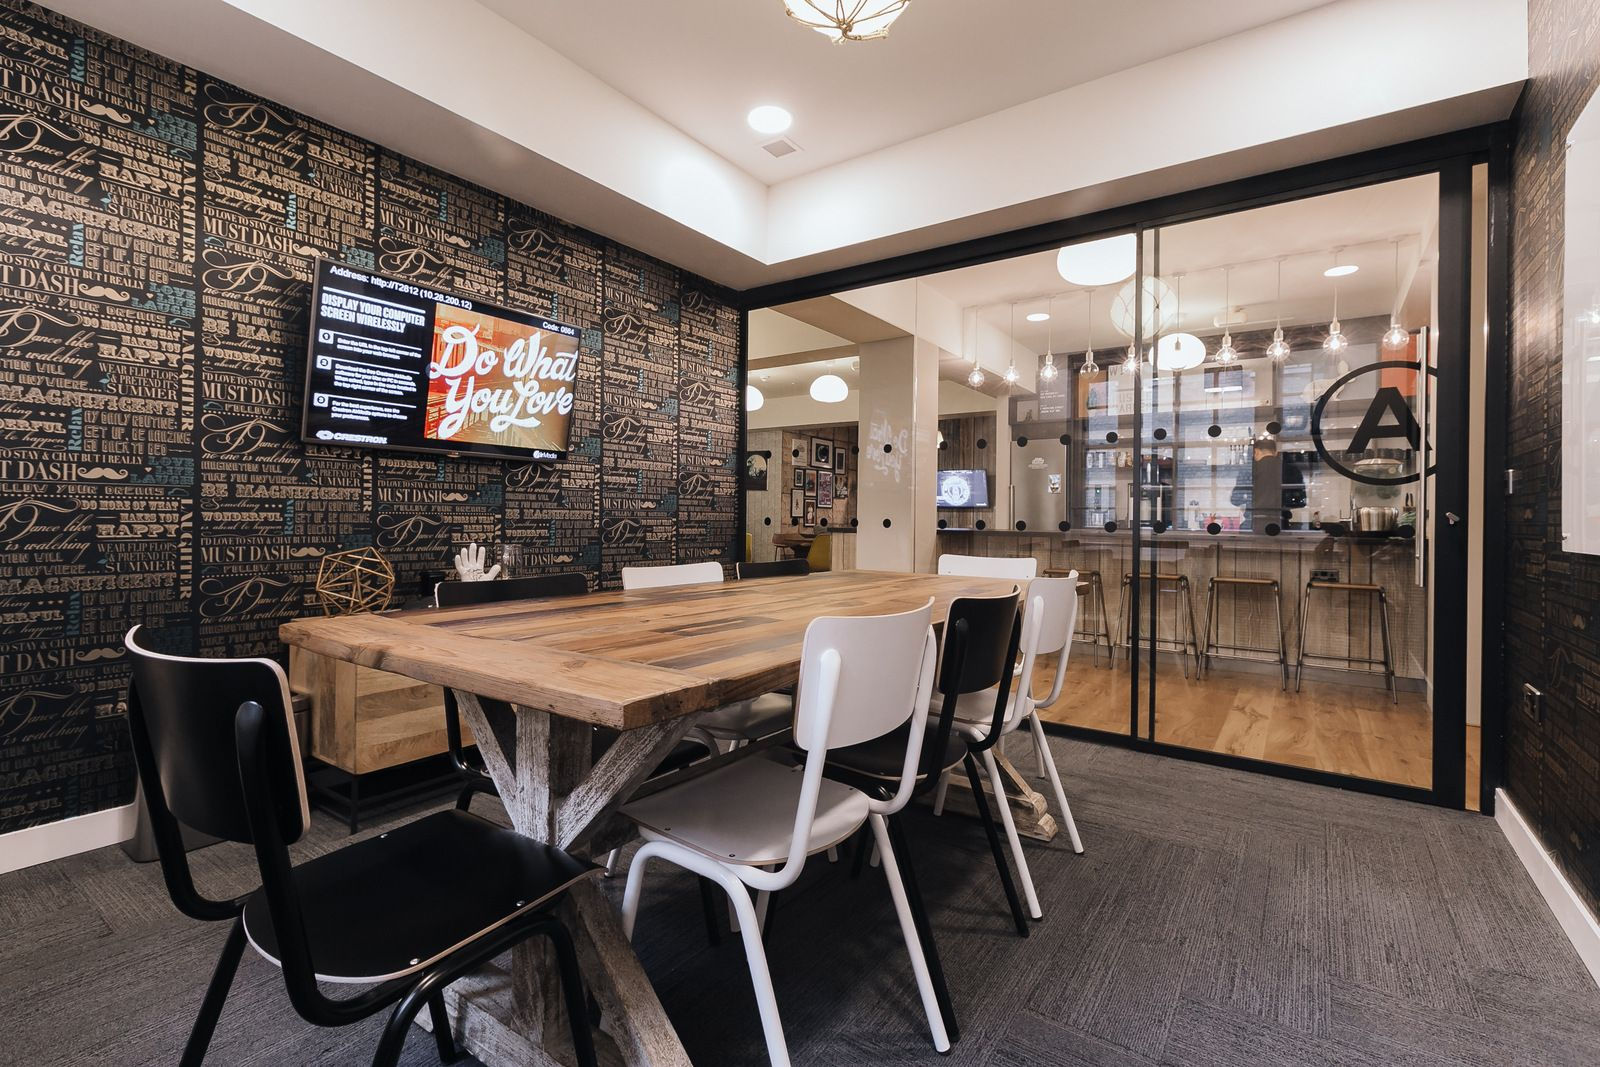 wework london meeting room - Conference Room Design Ideas